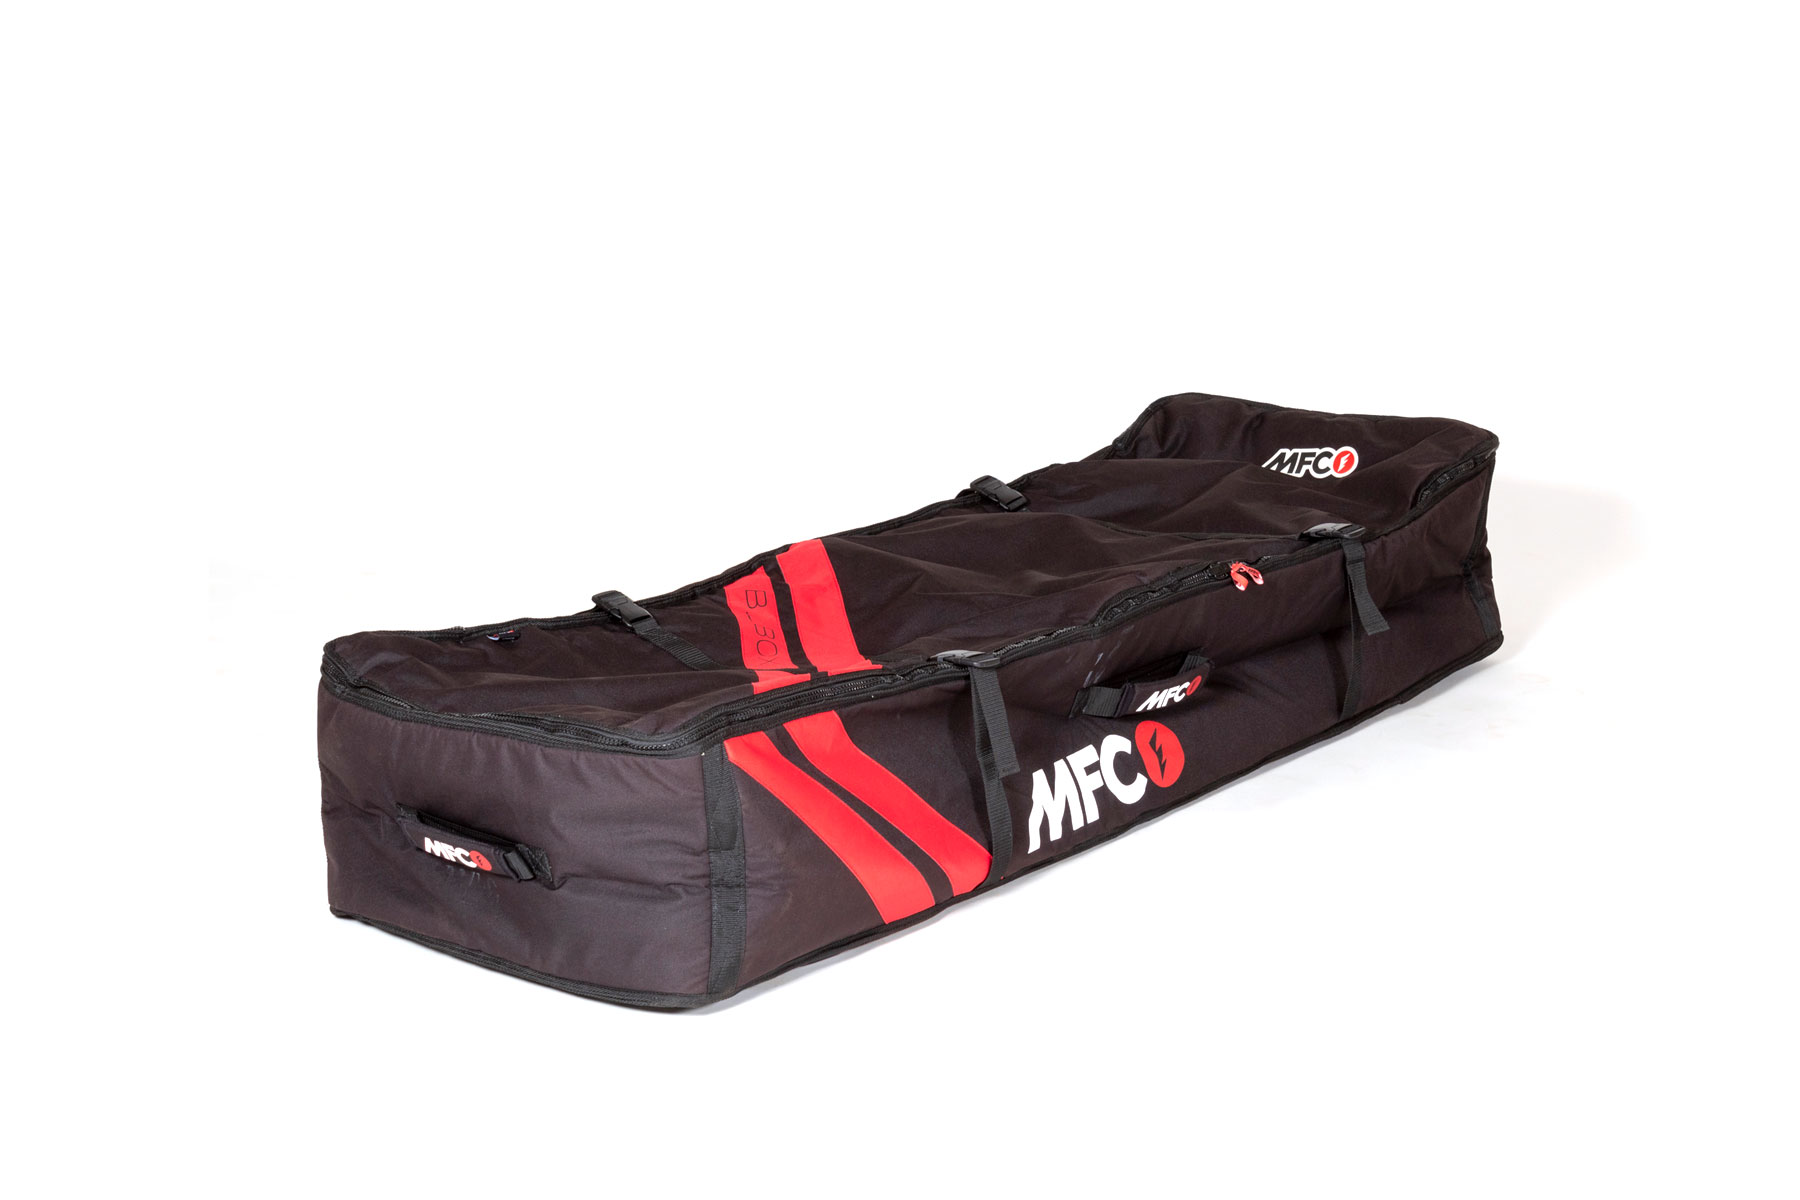 MFC WINDSURF BOOM BOX TRAVEL BAG